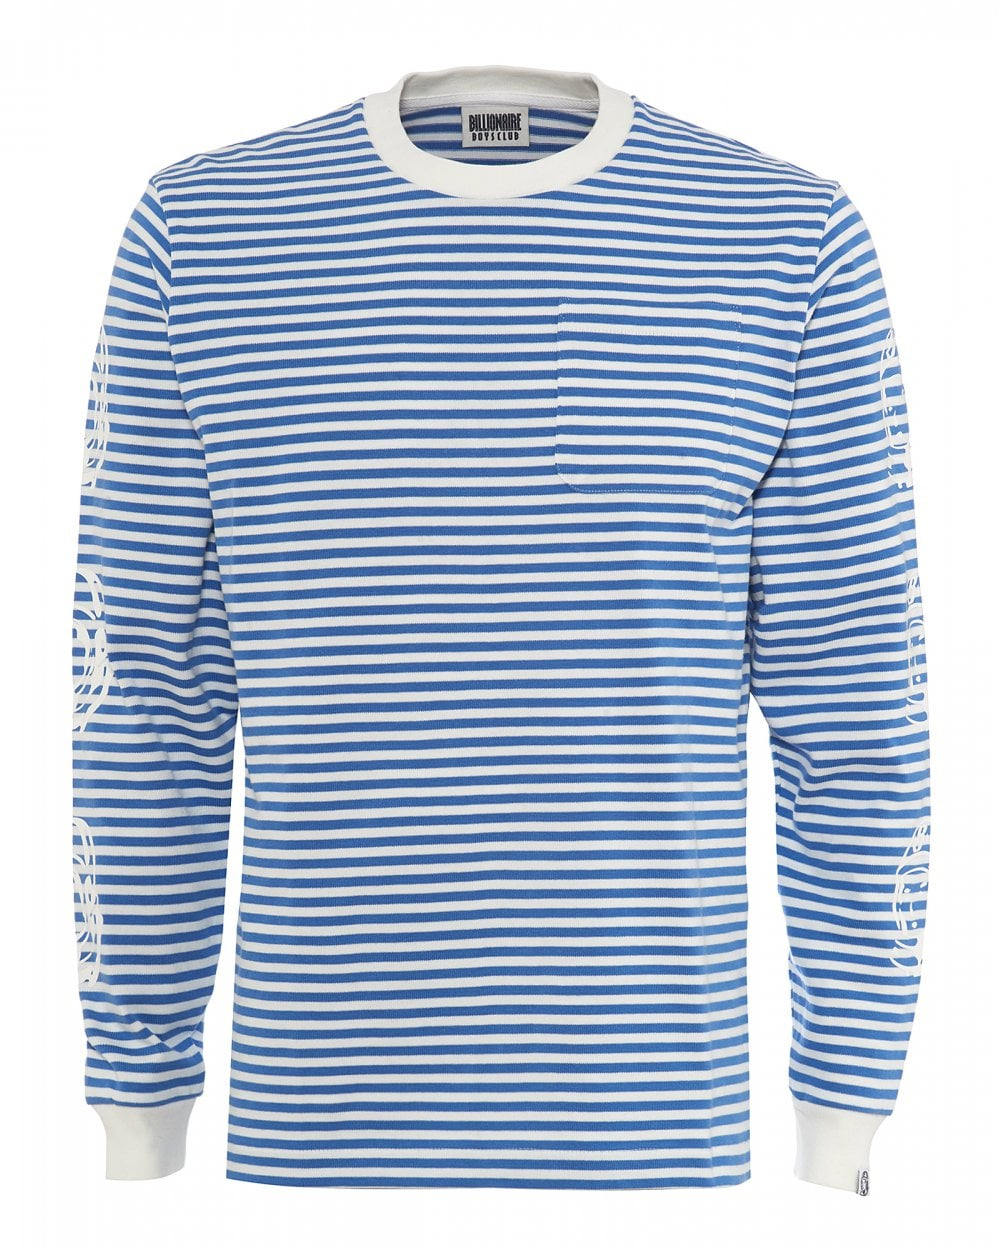 c81bbaacc Billionaire Boys Club Mens Long Sleeved Striped T-Shirt, Astronaut Tee